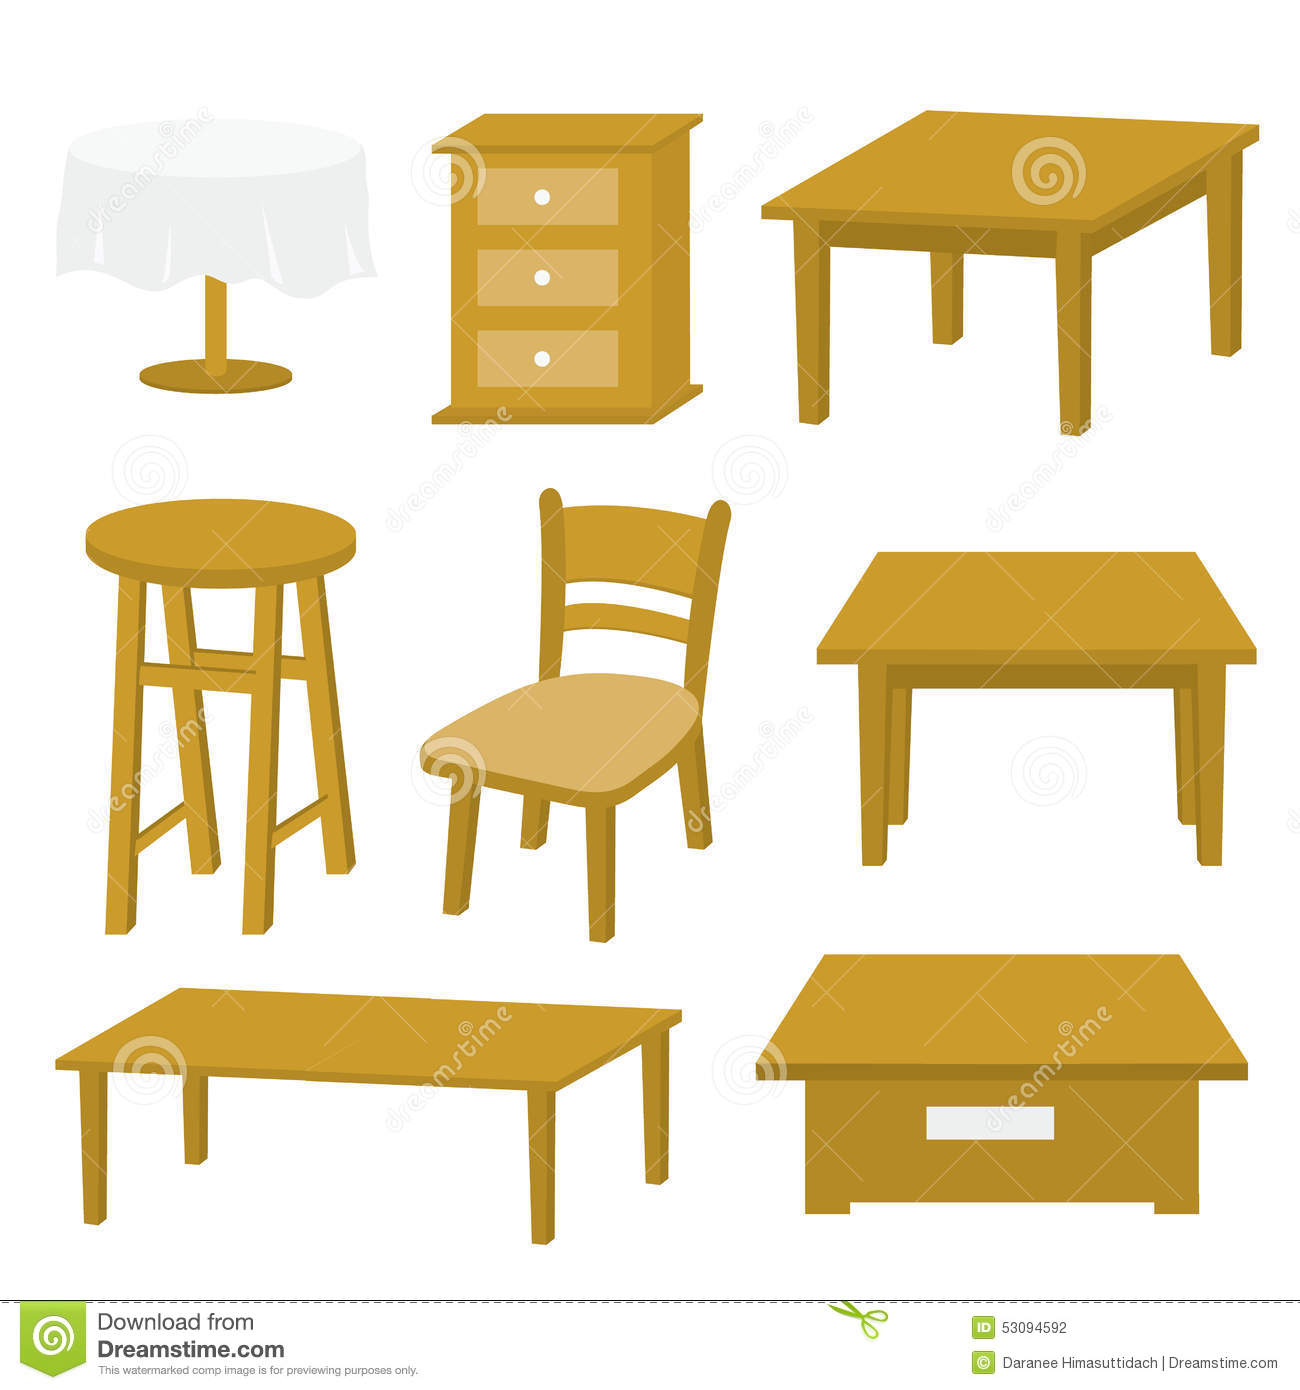 Table chair furniture wood vector design stock vector for Table design vector